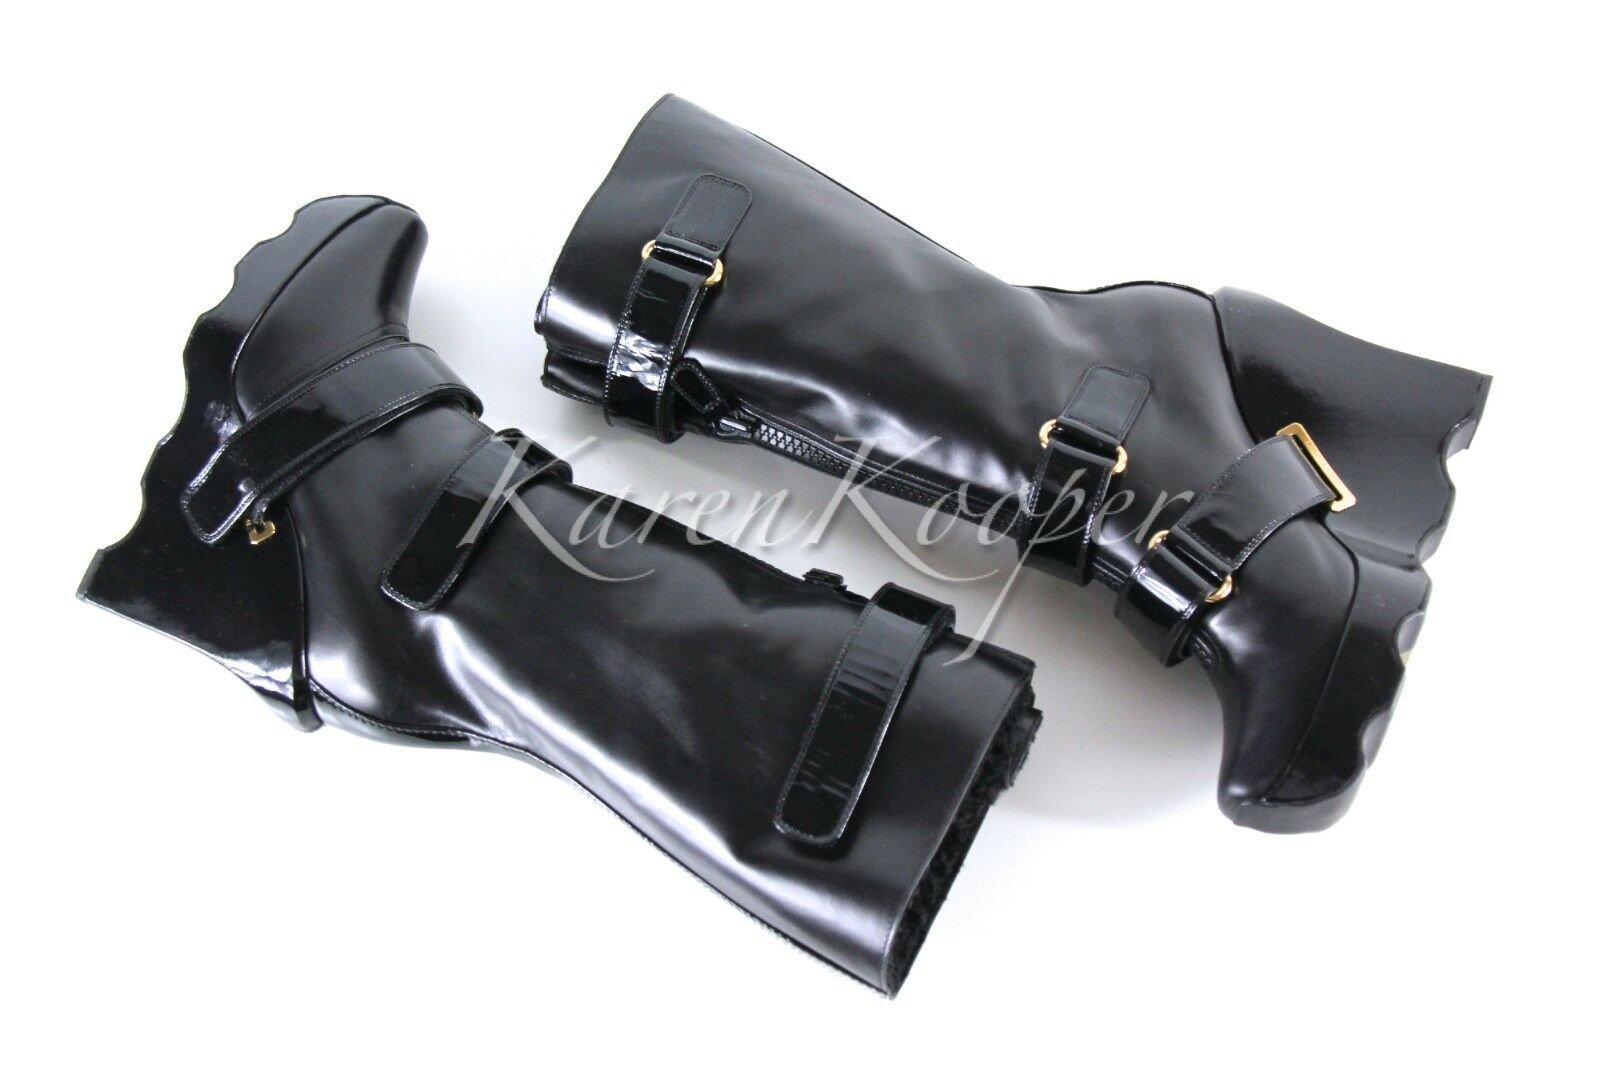 NEW AUTH LOUIS VUITTON RUNWAY EXTREME WEDGES LEATHER FETISH HIGH WINTER BOOTS